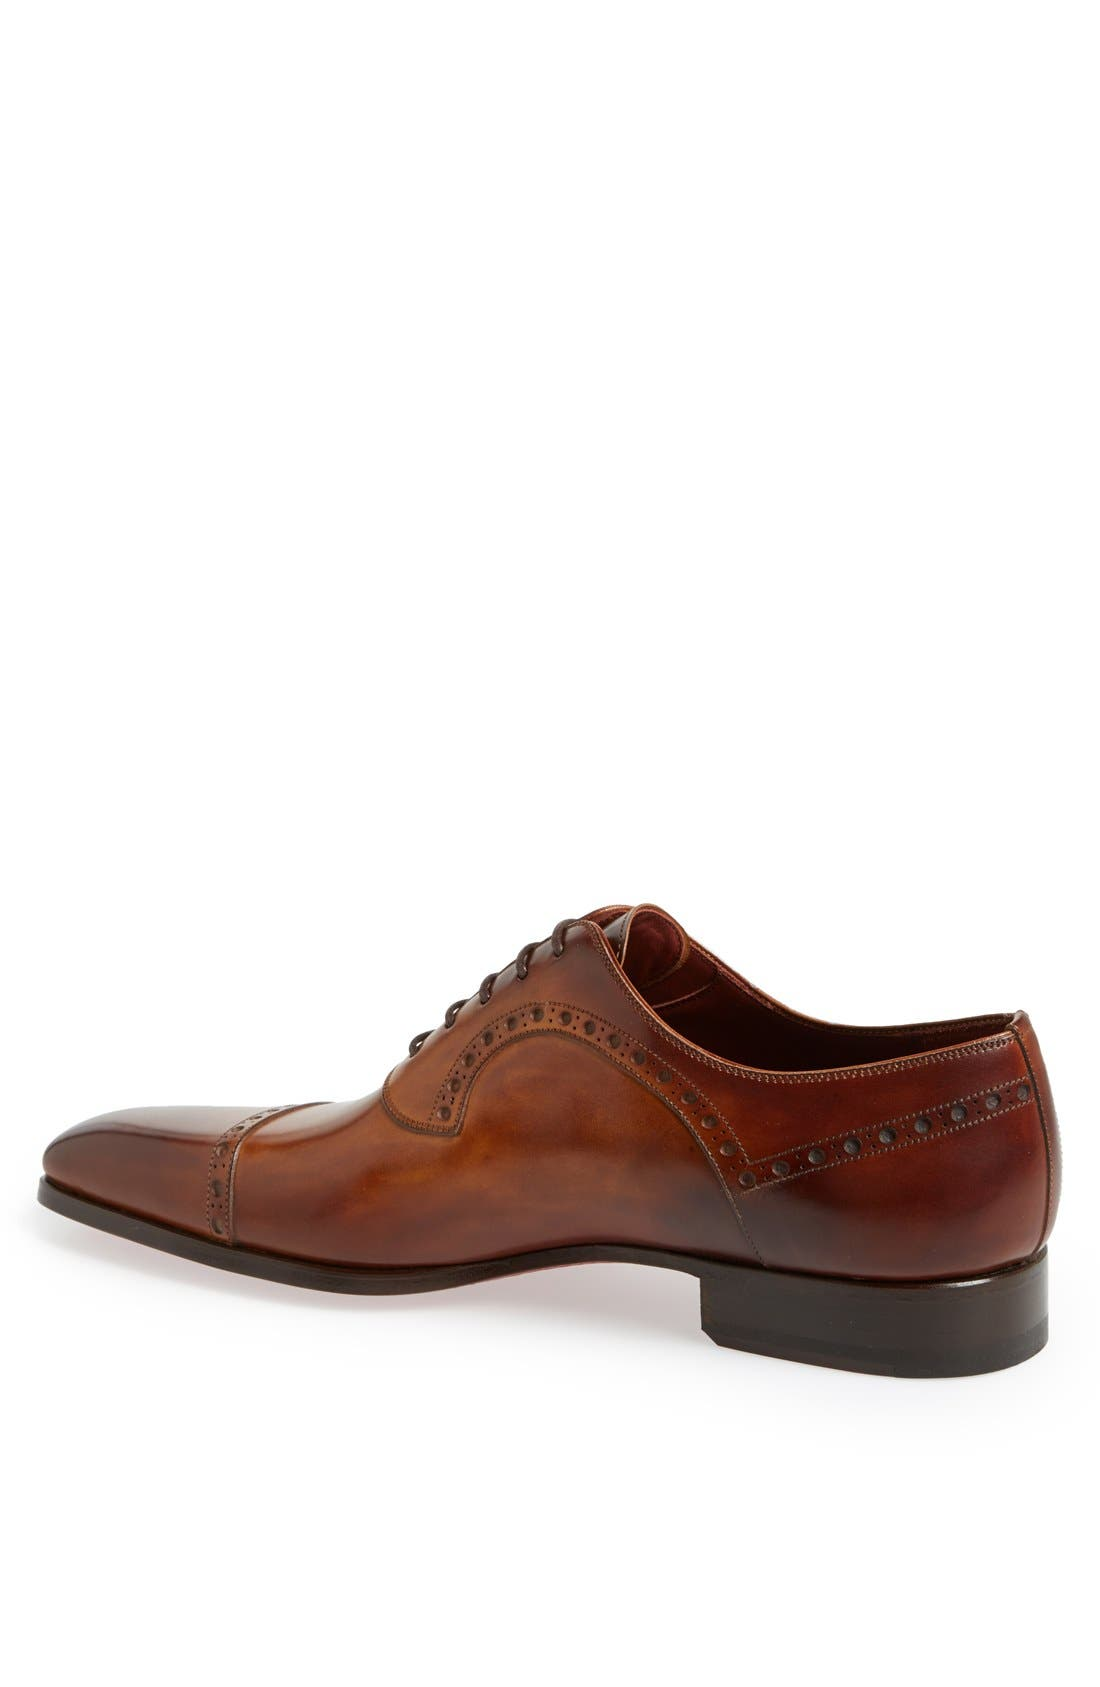 Alternate Image 2  - Magnanni 'Cris' Cap Toe Oxford